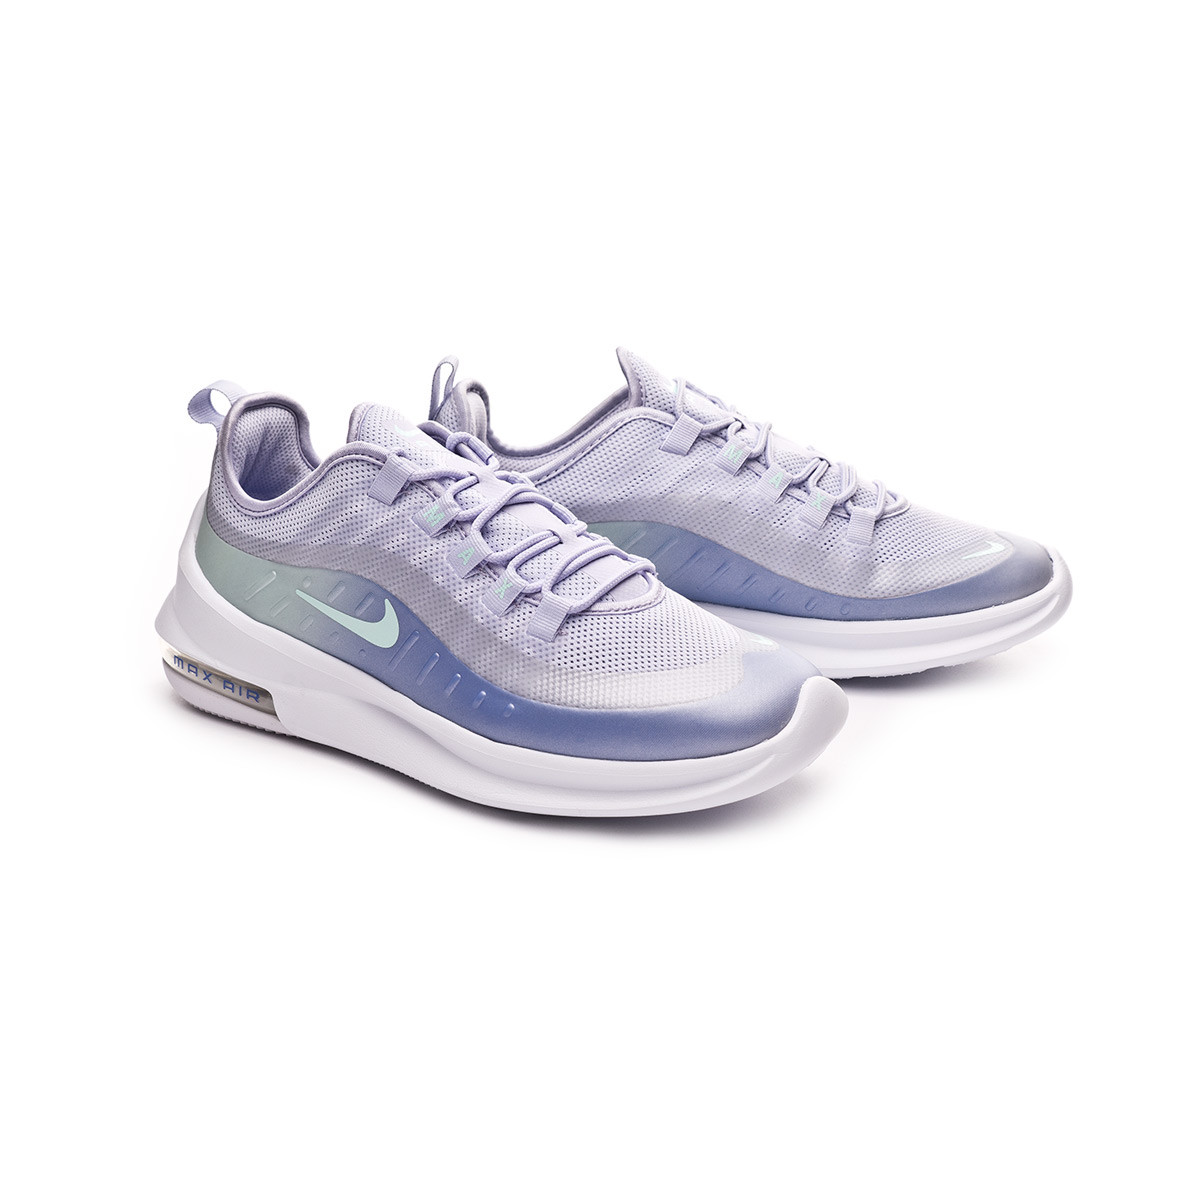 53b35181feb6 Trainers Nike Air Max Axis Premium Mujer Oxigen purple-Teal tint ...